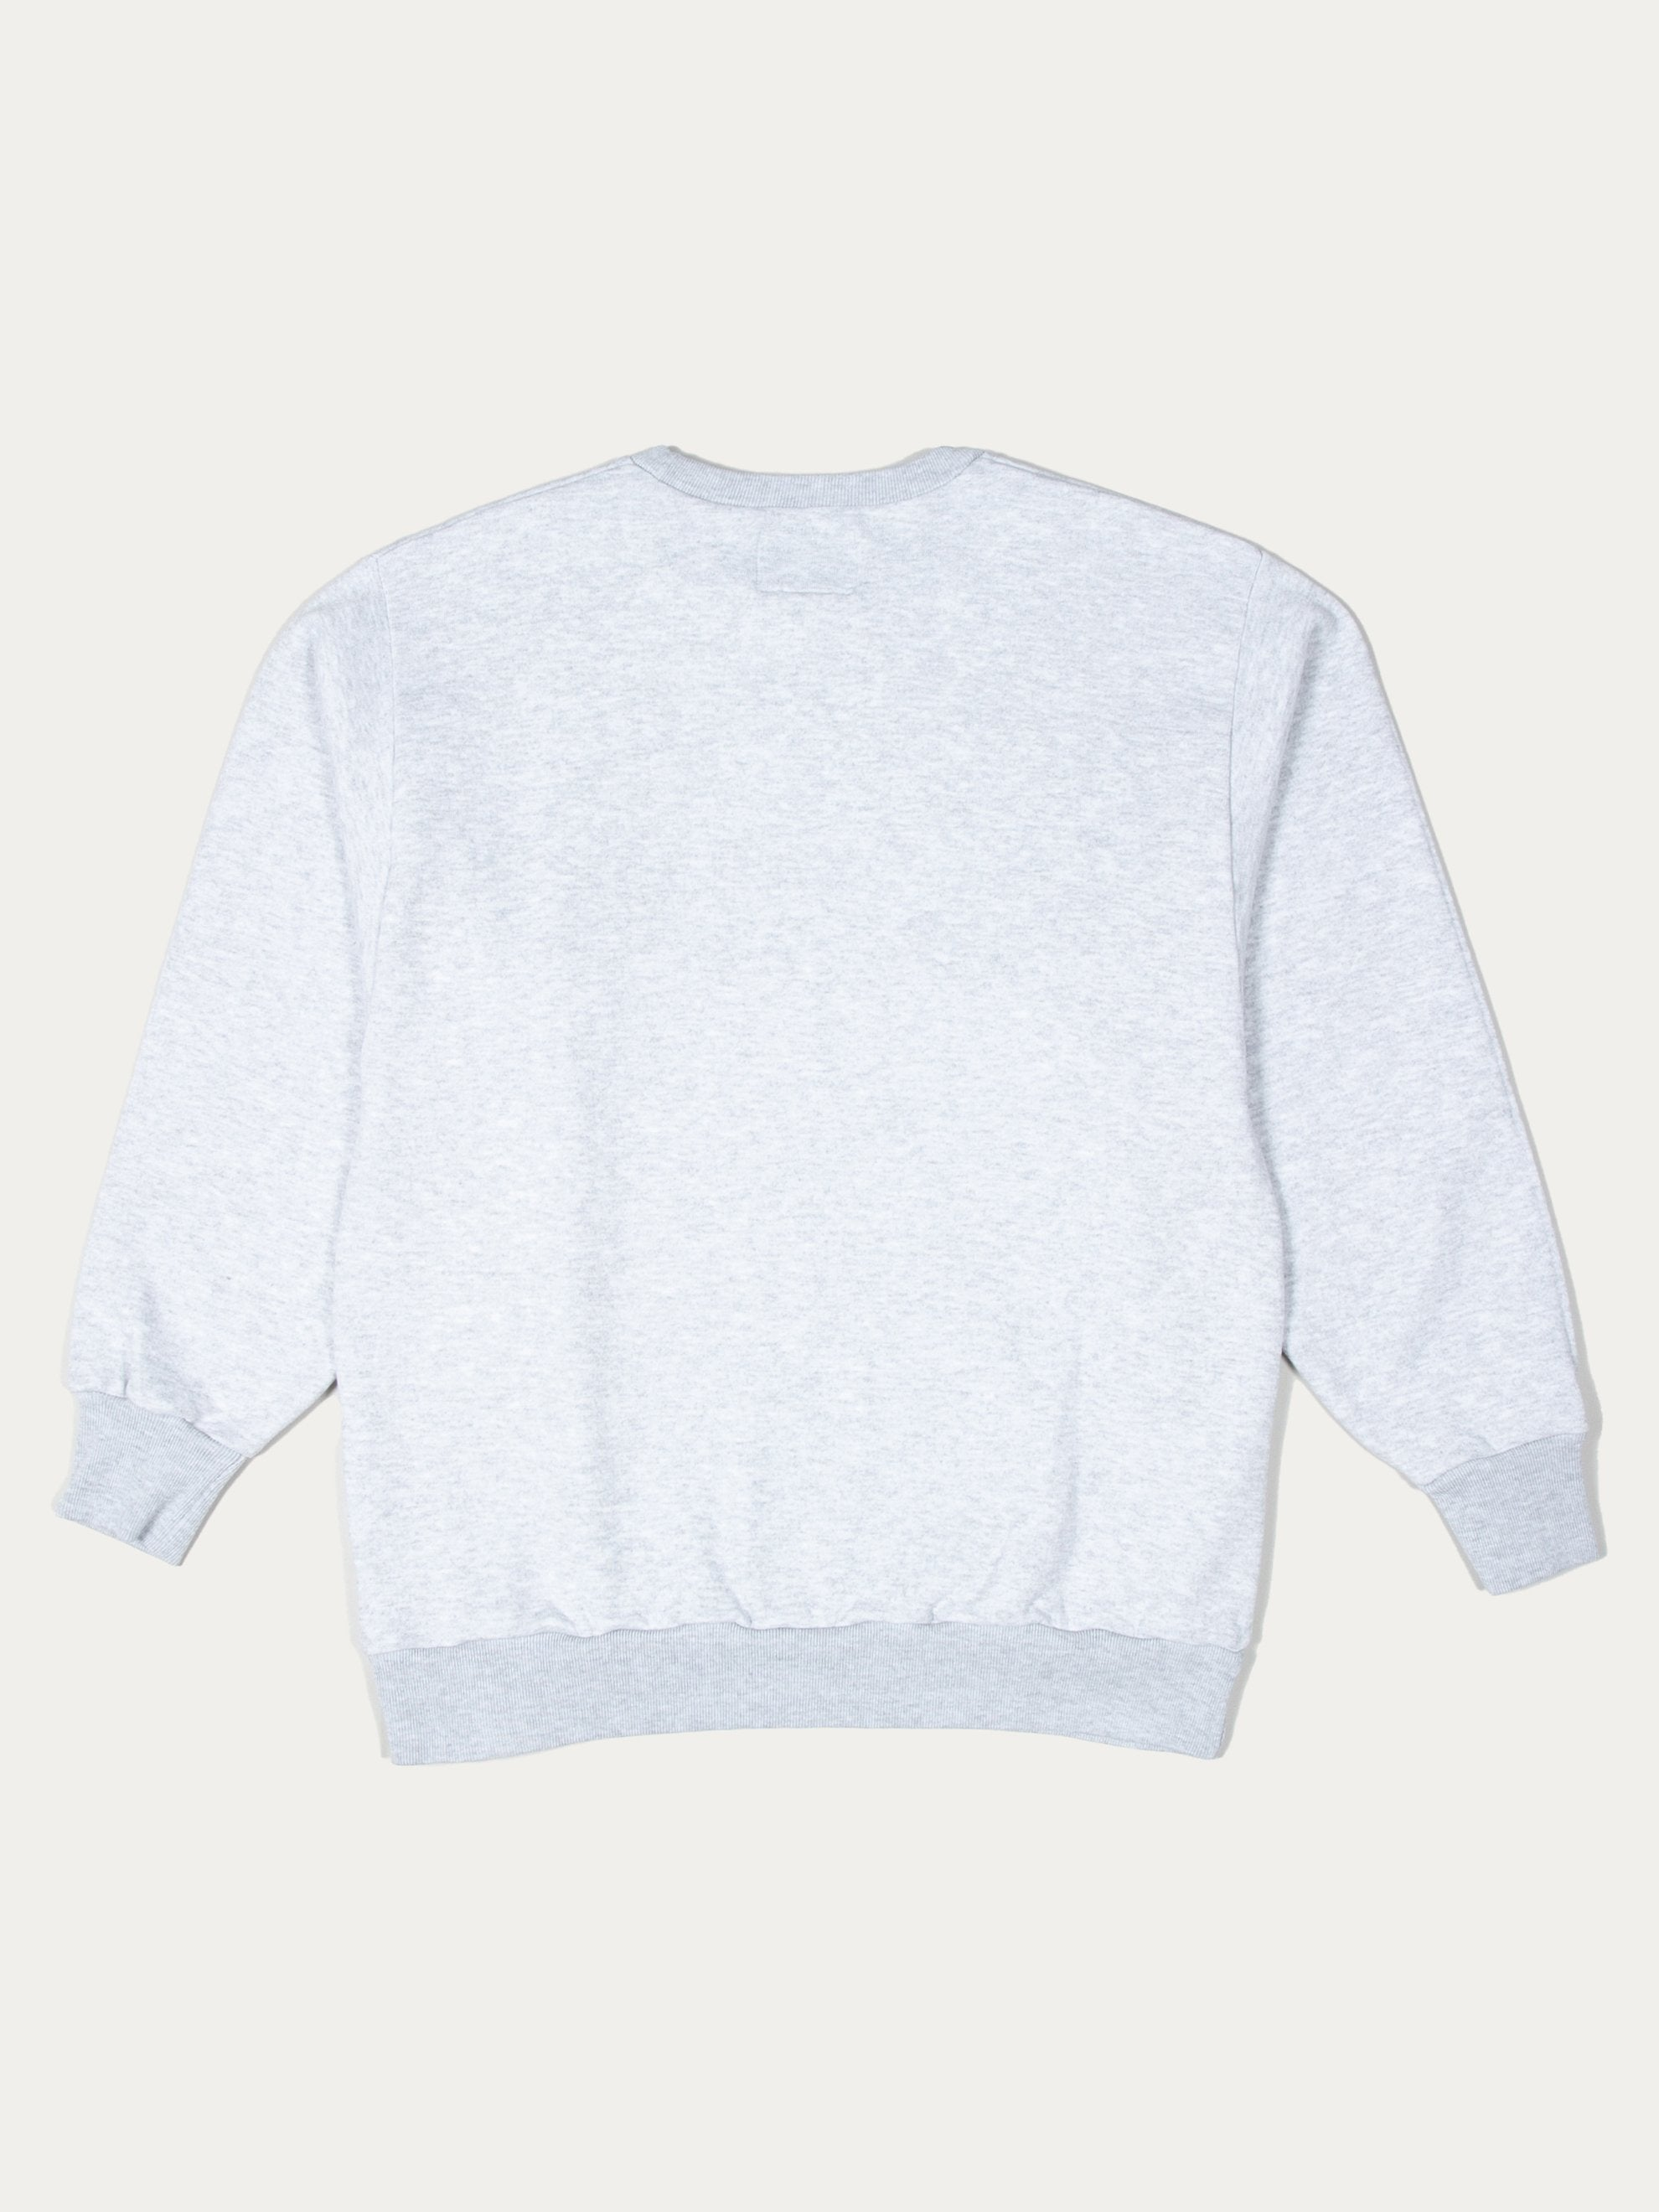 Dawn Design Crewneck / Sweatshirt Copo